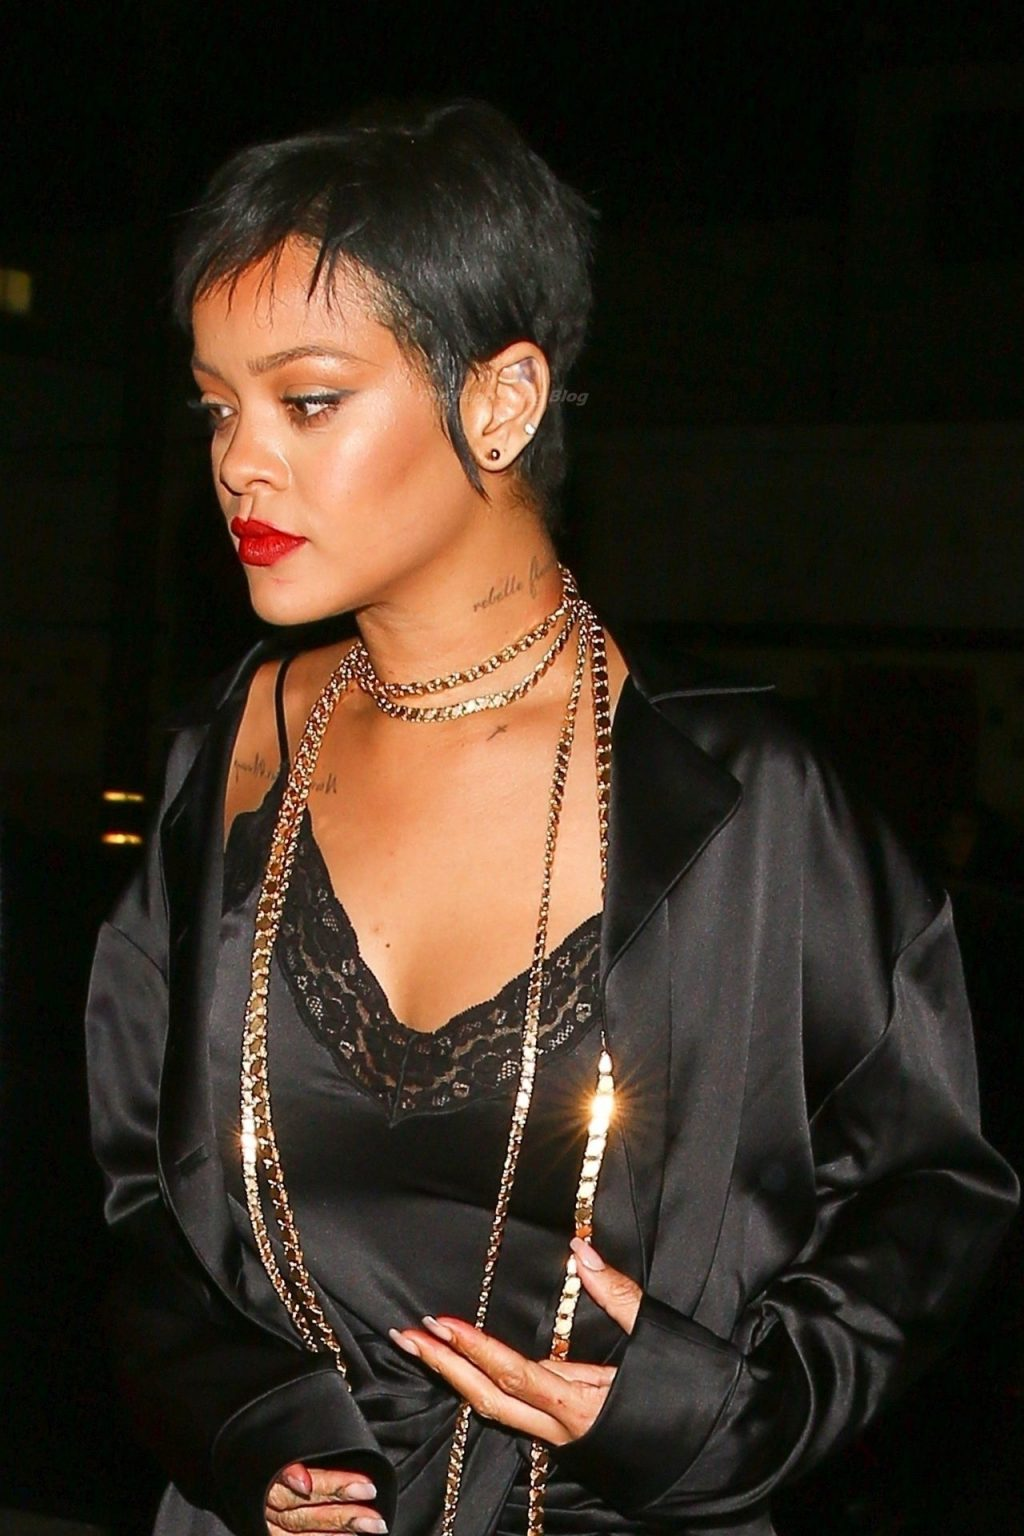 Rihanna Puts on a Sultry Display in Black Silk While Leaving Delilah Nightclub with Friends (22 Photos)